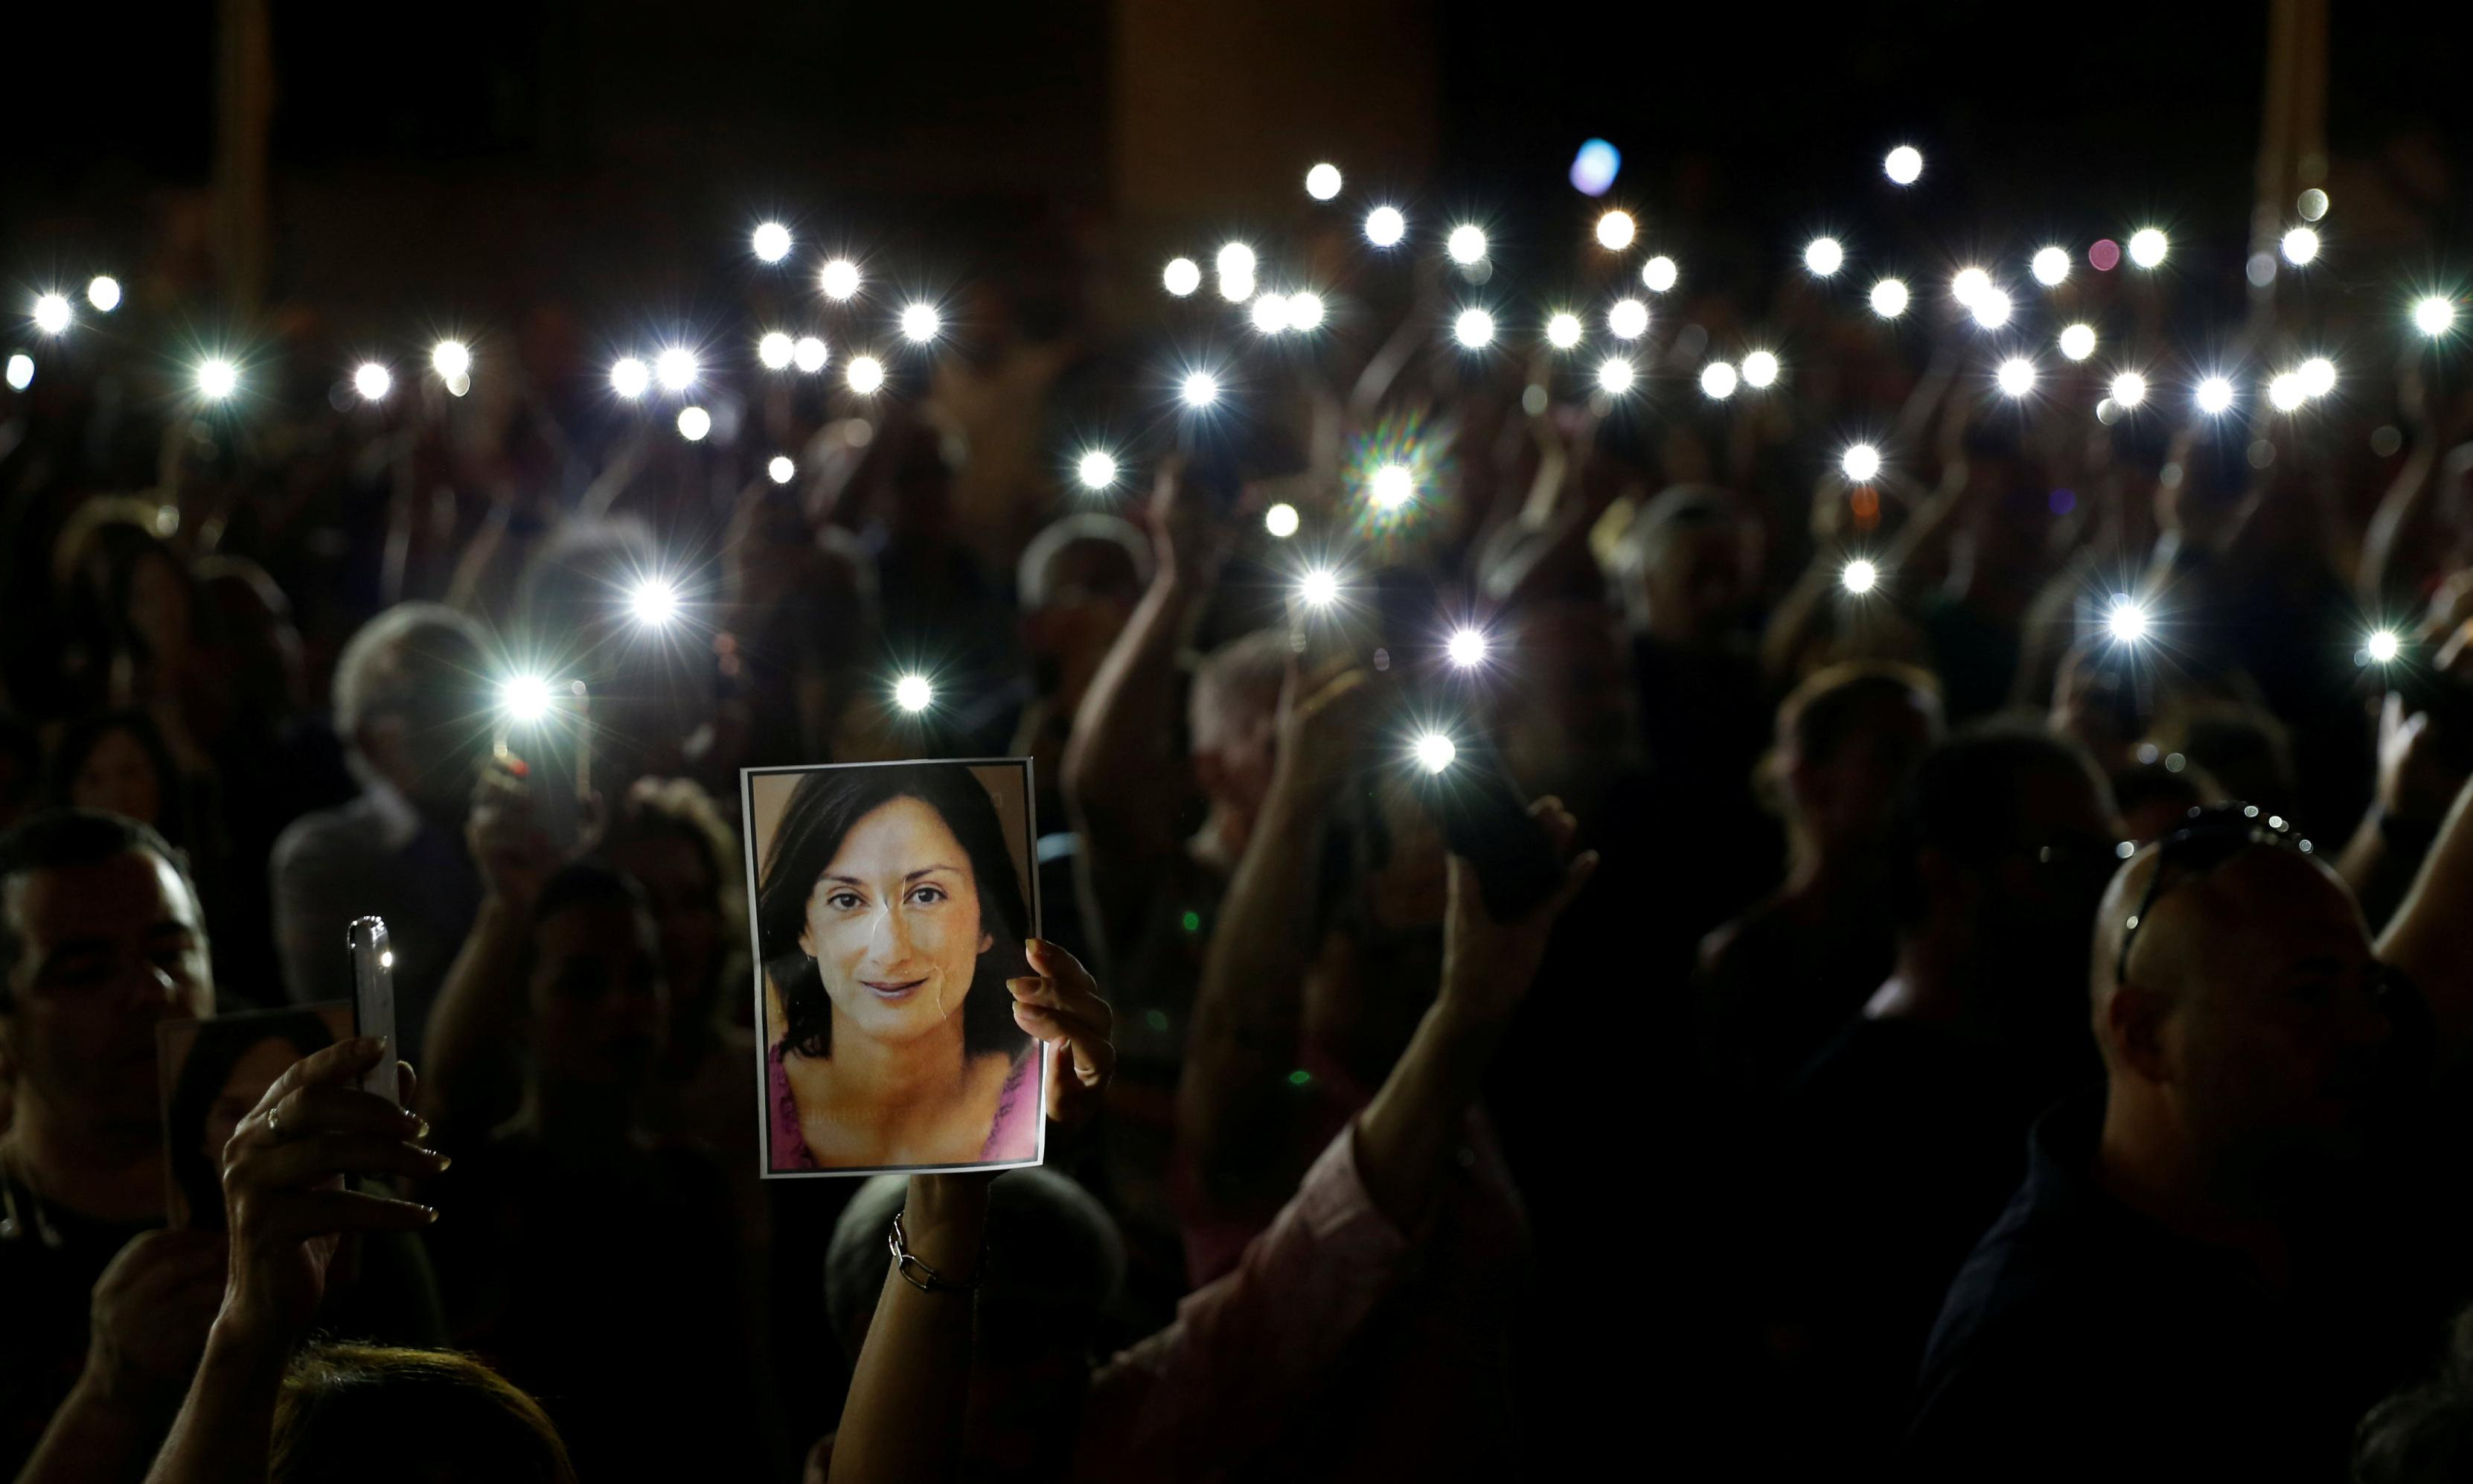 A year after her murder, where is the justice for Daphne Caruana Galizia?